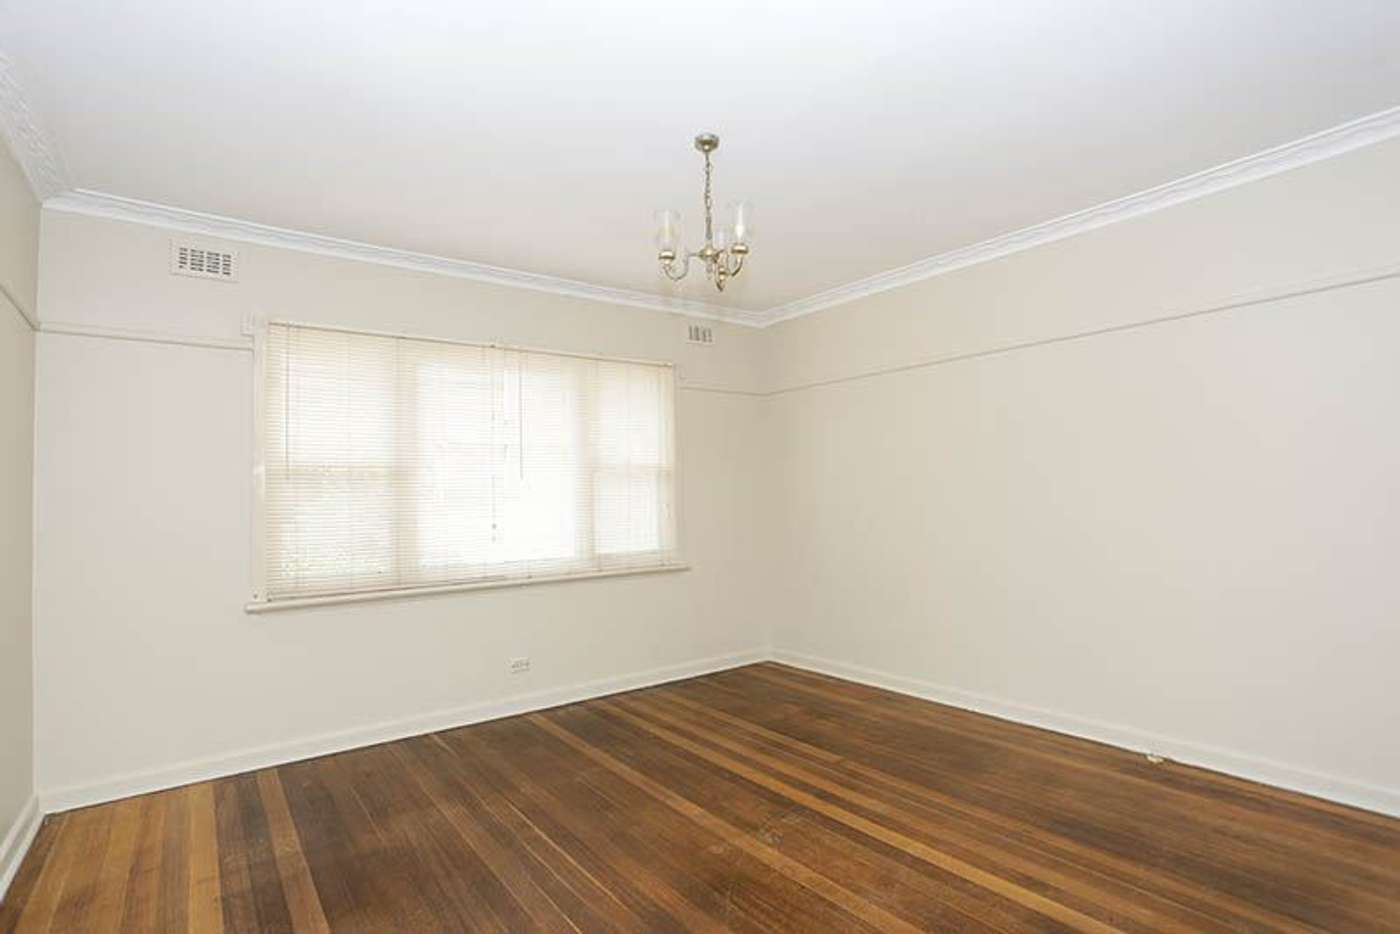 Sixth view of Homely house listing, 45 Panoramic Grove, Glen Waverley VIC 3150